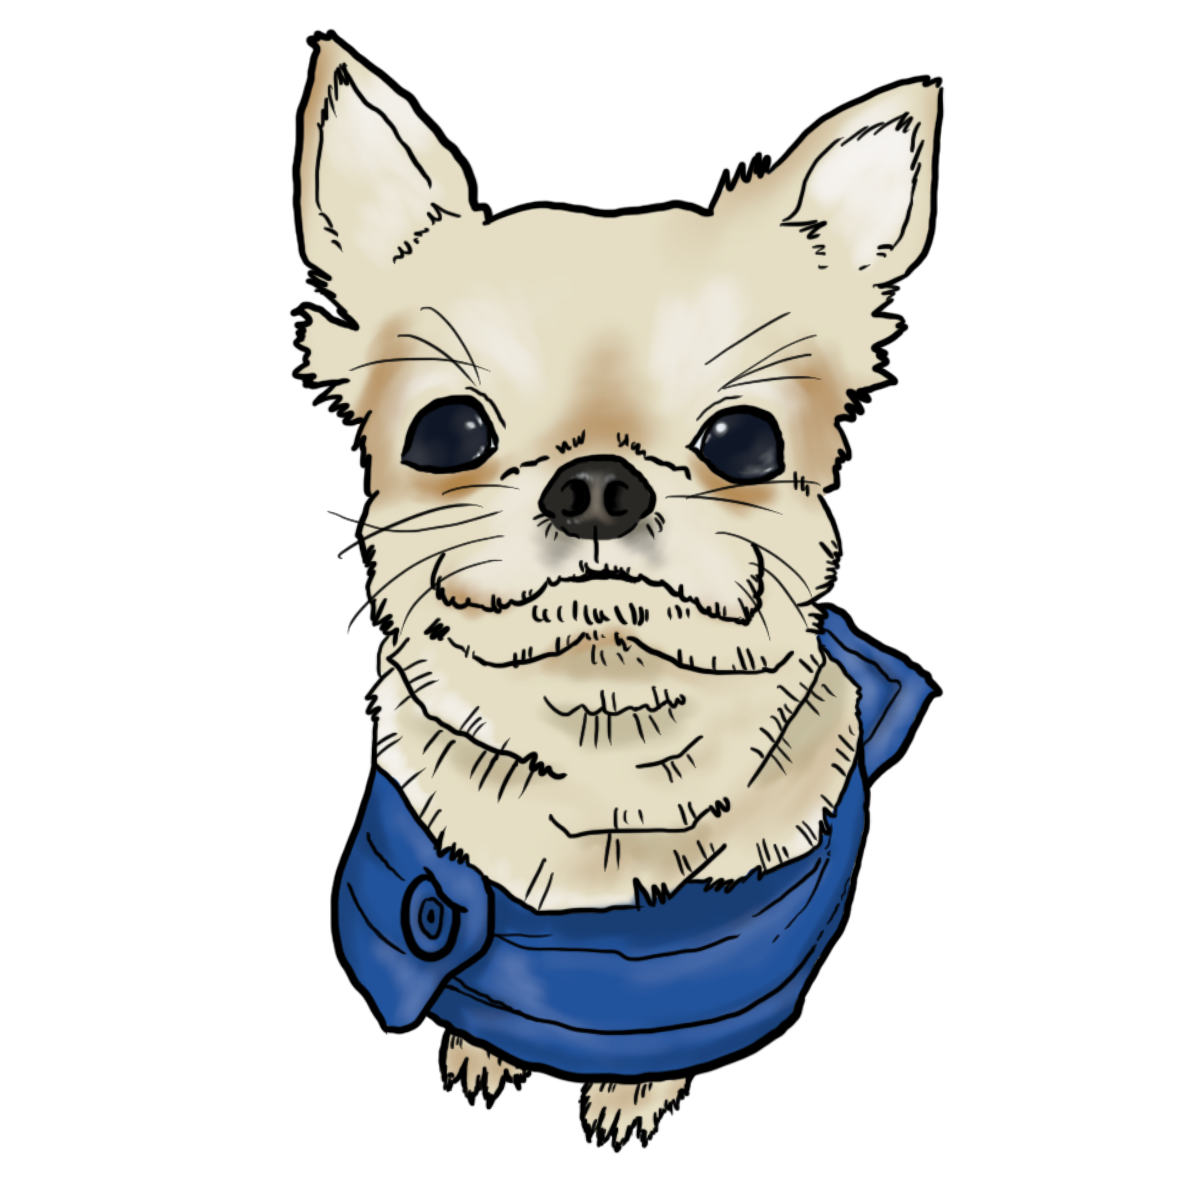 dog wearing clothes (Chihuahua) drawing